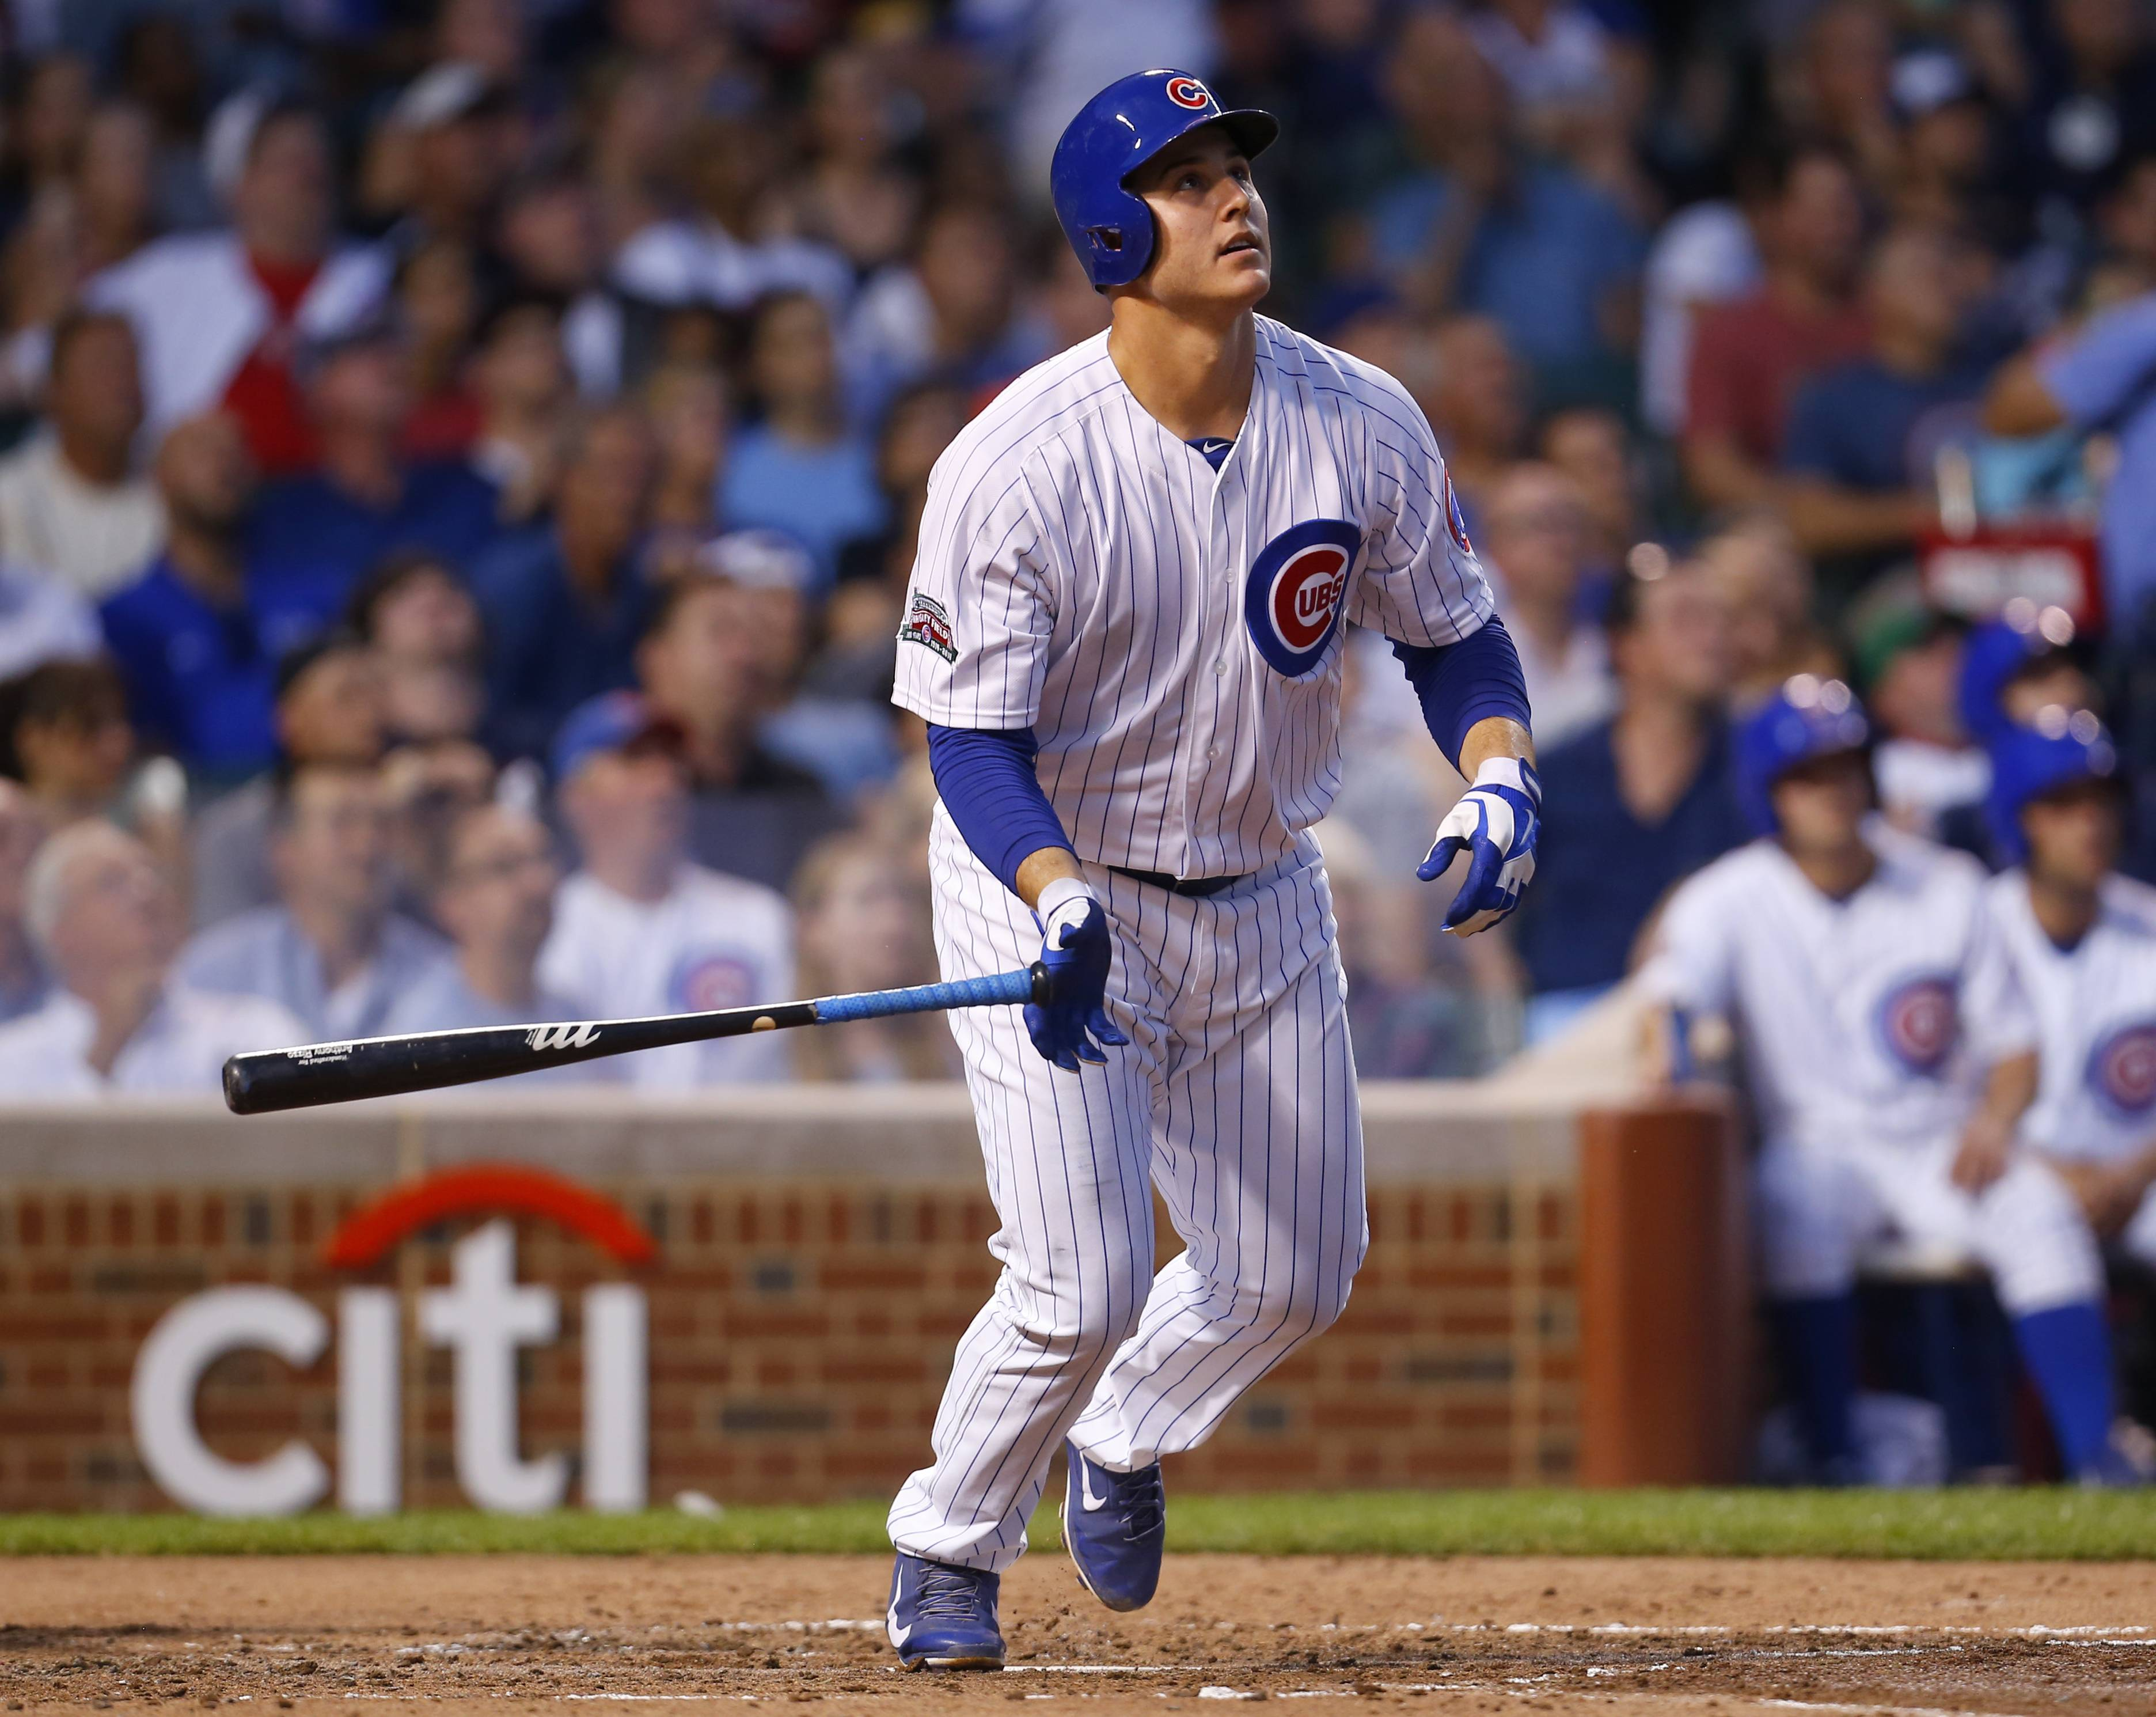 Chicago Cubs first baseman Anthony Rizzo (44) watches his solo home run in the third inning of a baseball game against the San Diego Padres in Chicago, Tuesday, July 22, 2014. (AP Photo/Jeff Haynes)